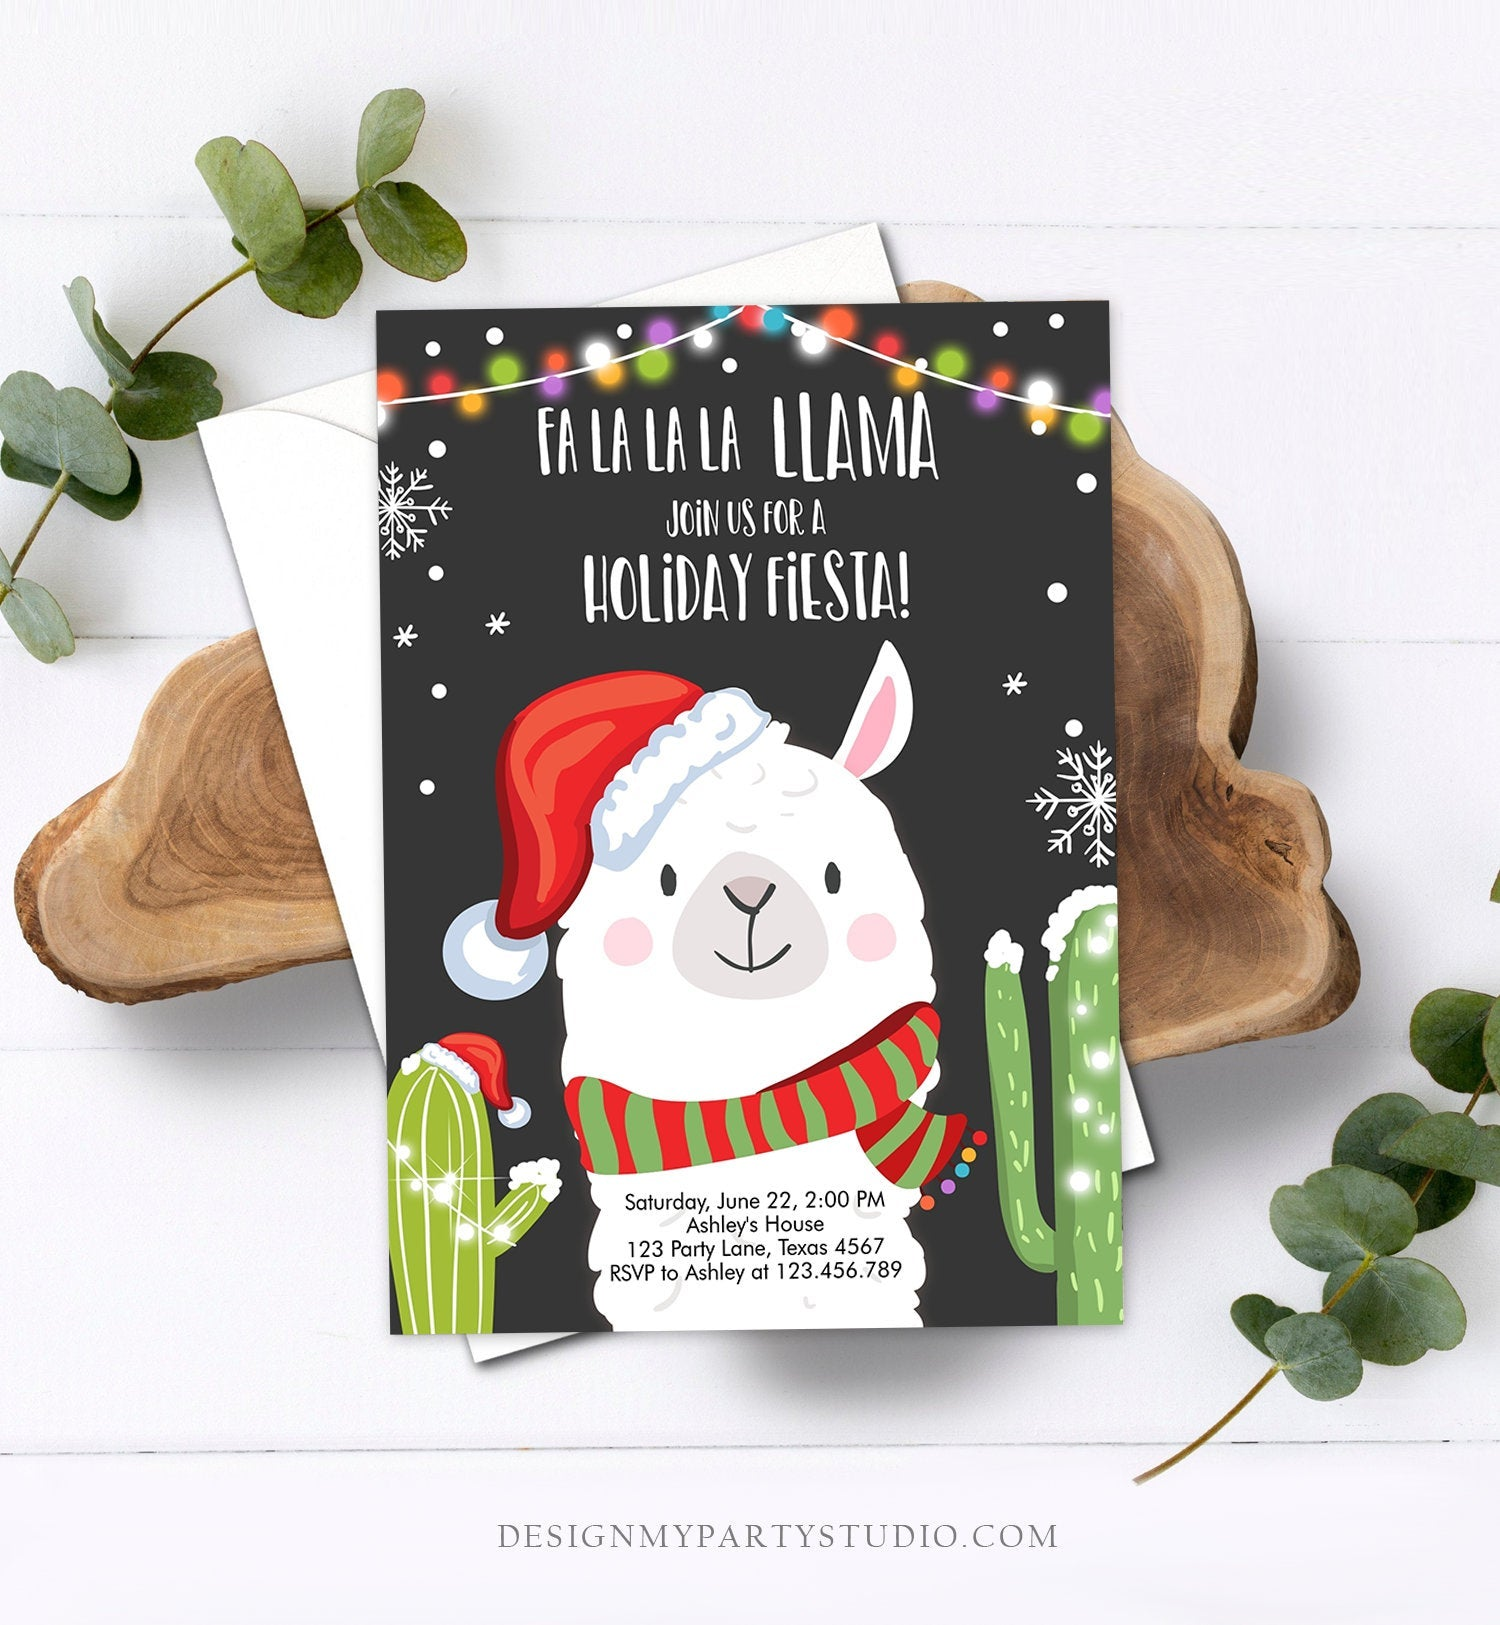 Editable Llama Christmas Party Invitation Cactus Mexican Holiday Fiesta Xmas Fa La La Sweater Party Download Printable Corjl Template 0273